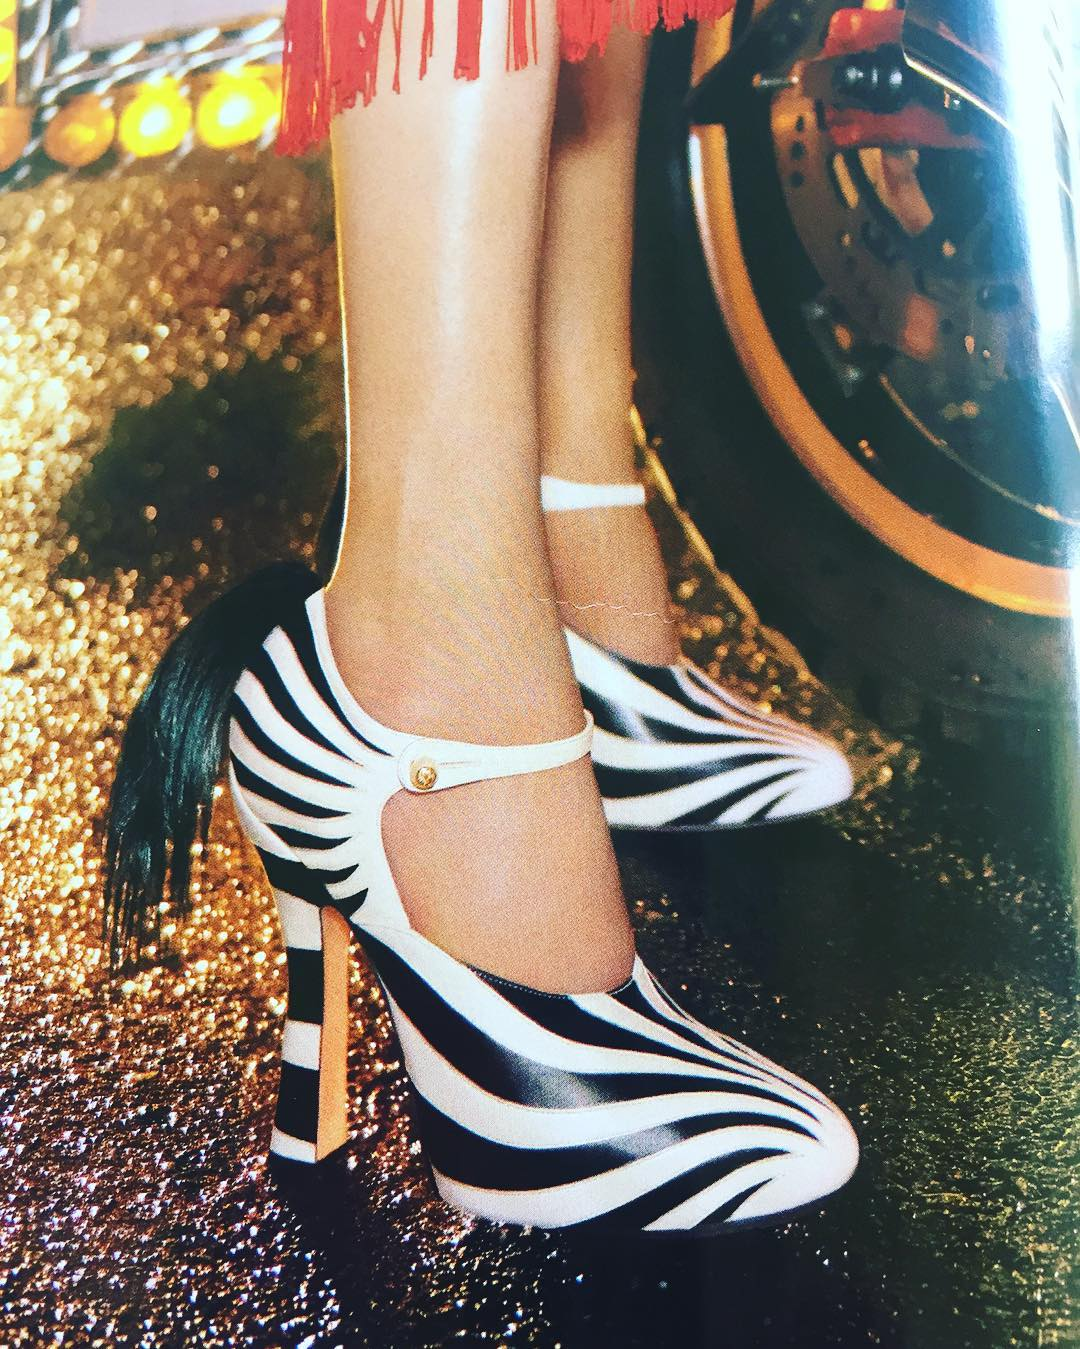 Gives a whole new meaning to zebra hunting fashion fashionablehellip